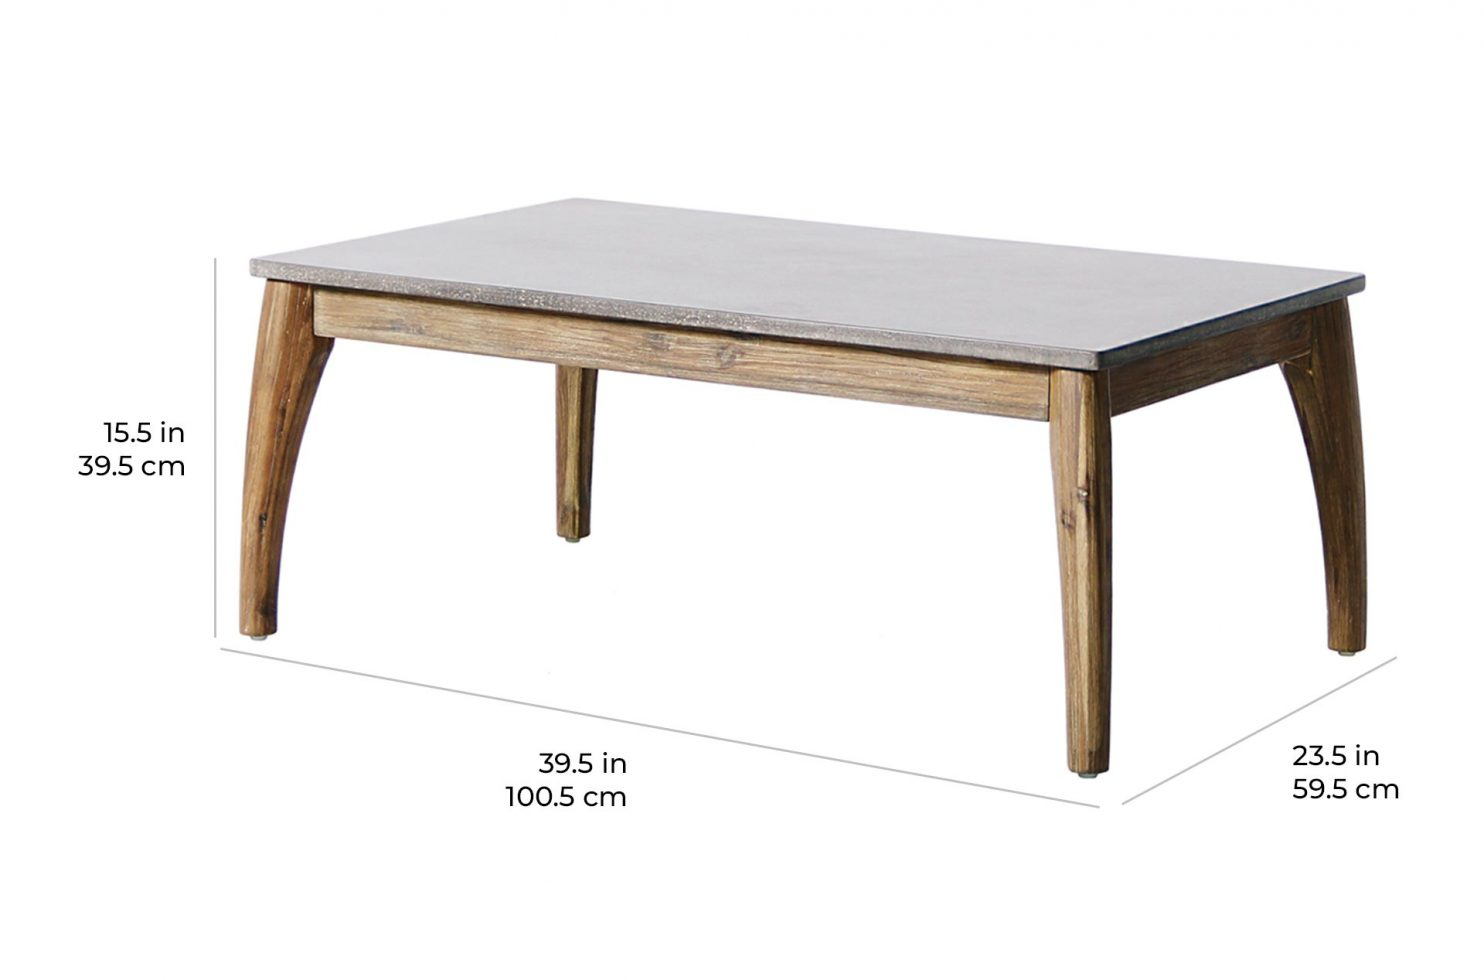 wings coffee table E50499003 scale dims